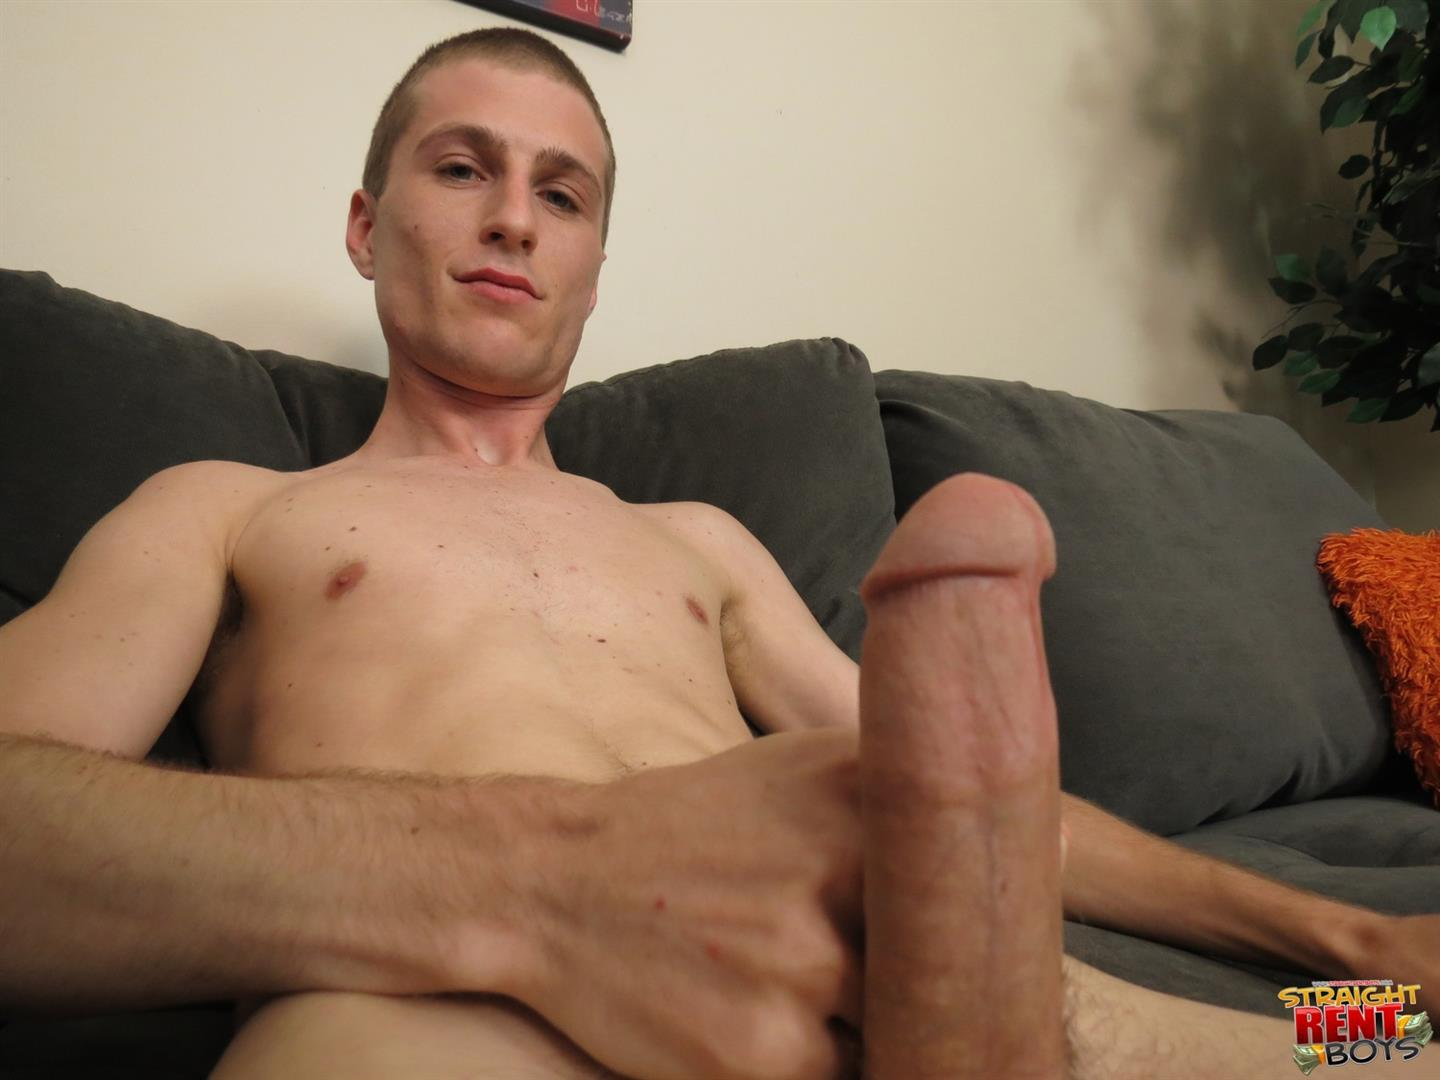 Staight Rent Boys Jacob Griffin Skinny Straight Twink With A Big Cock Amateur Gay Porn 14 Amateur Straight Skinny Twink Jerking Off His Big Cock